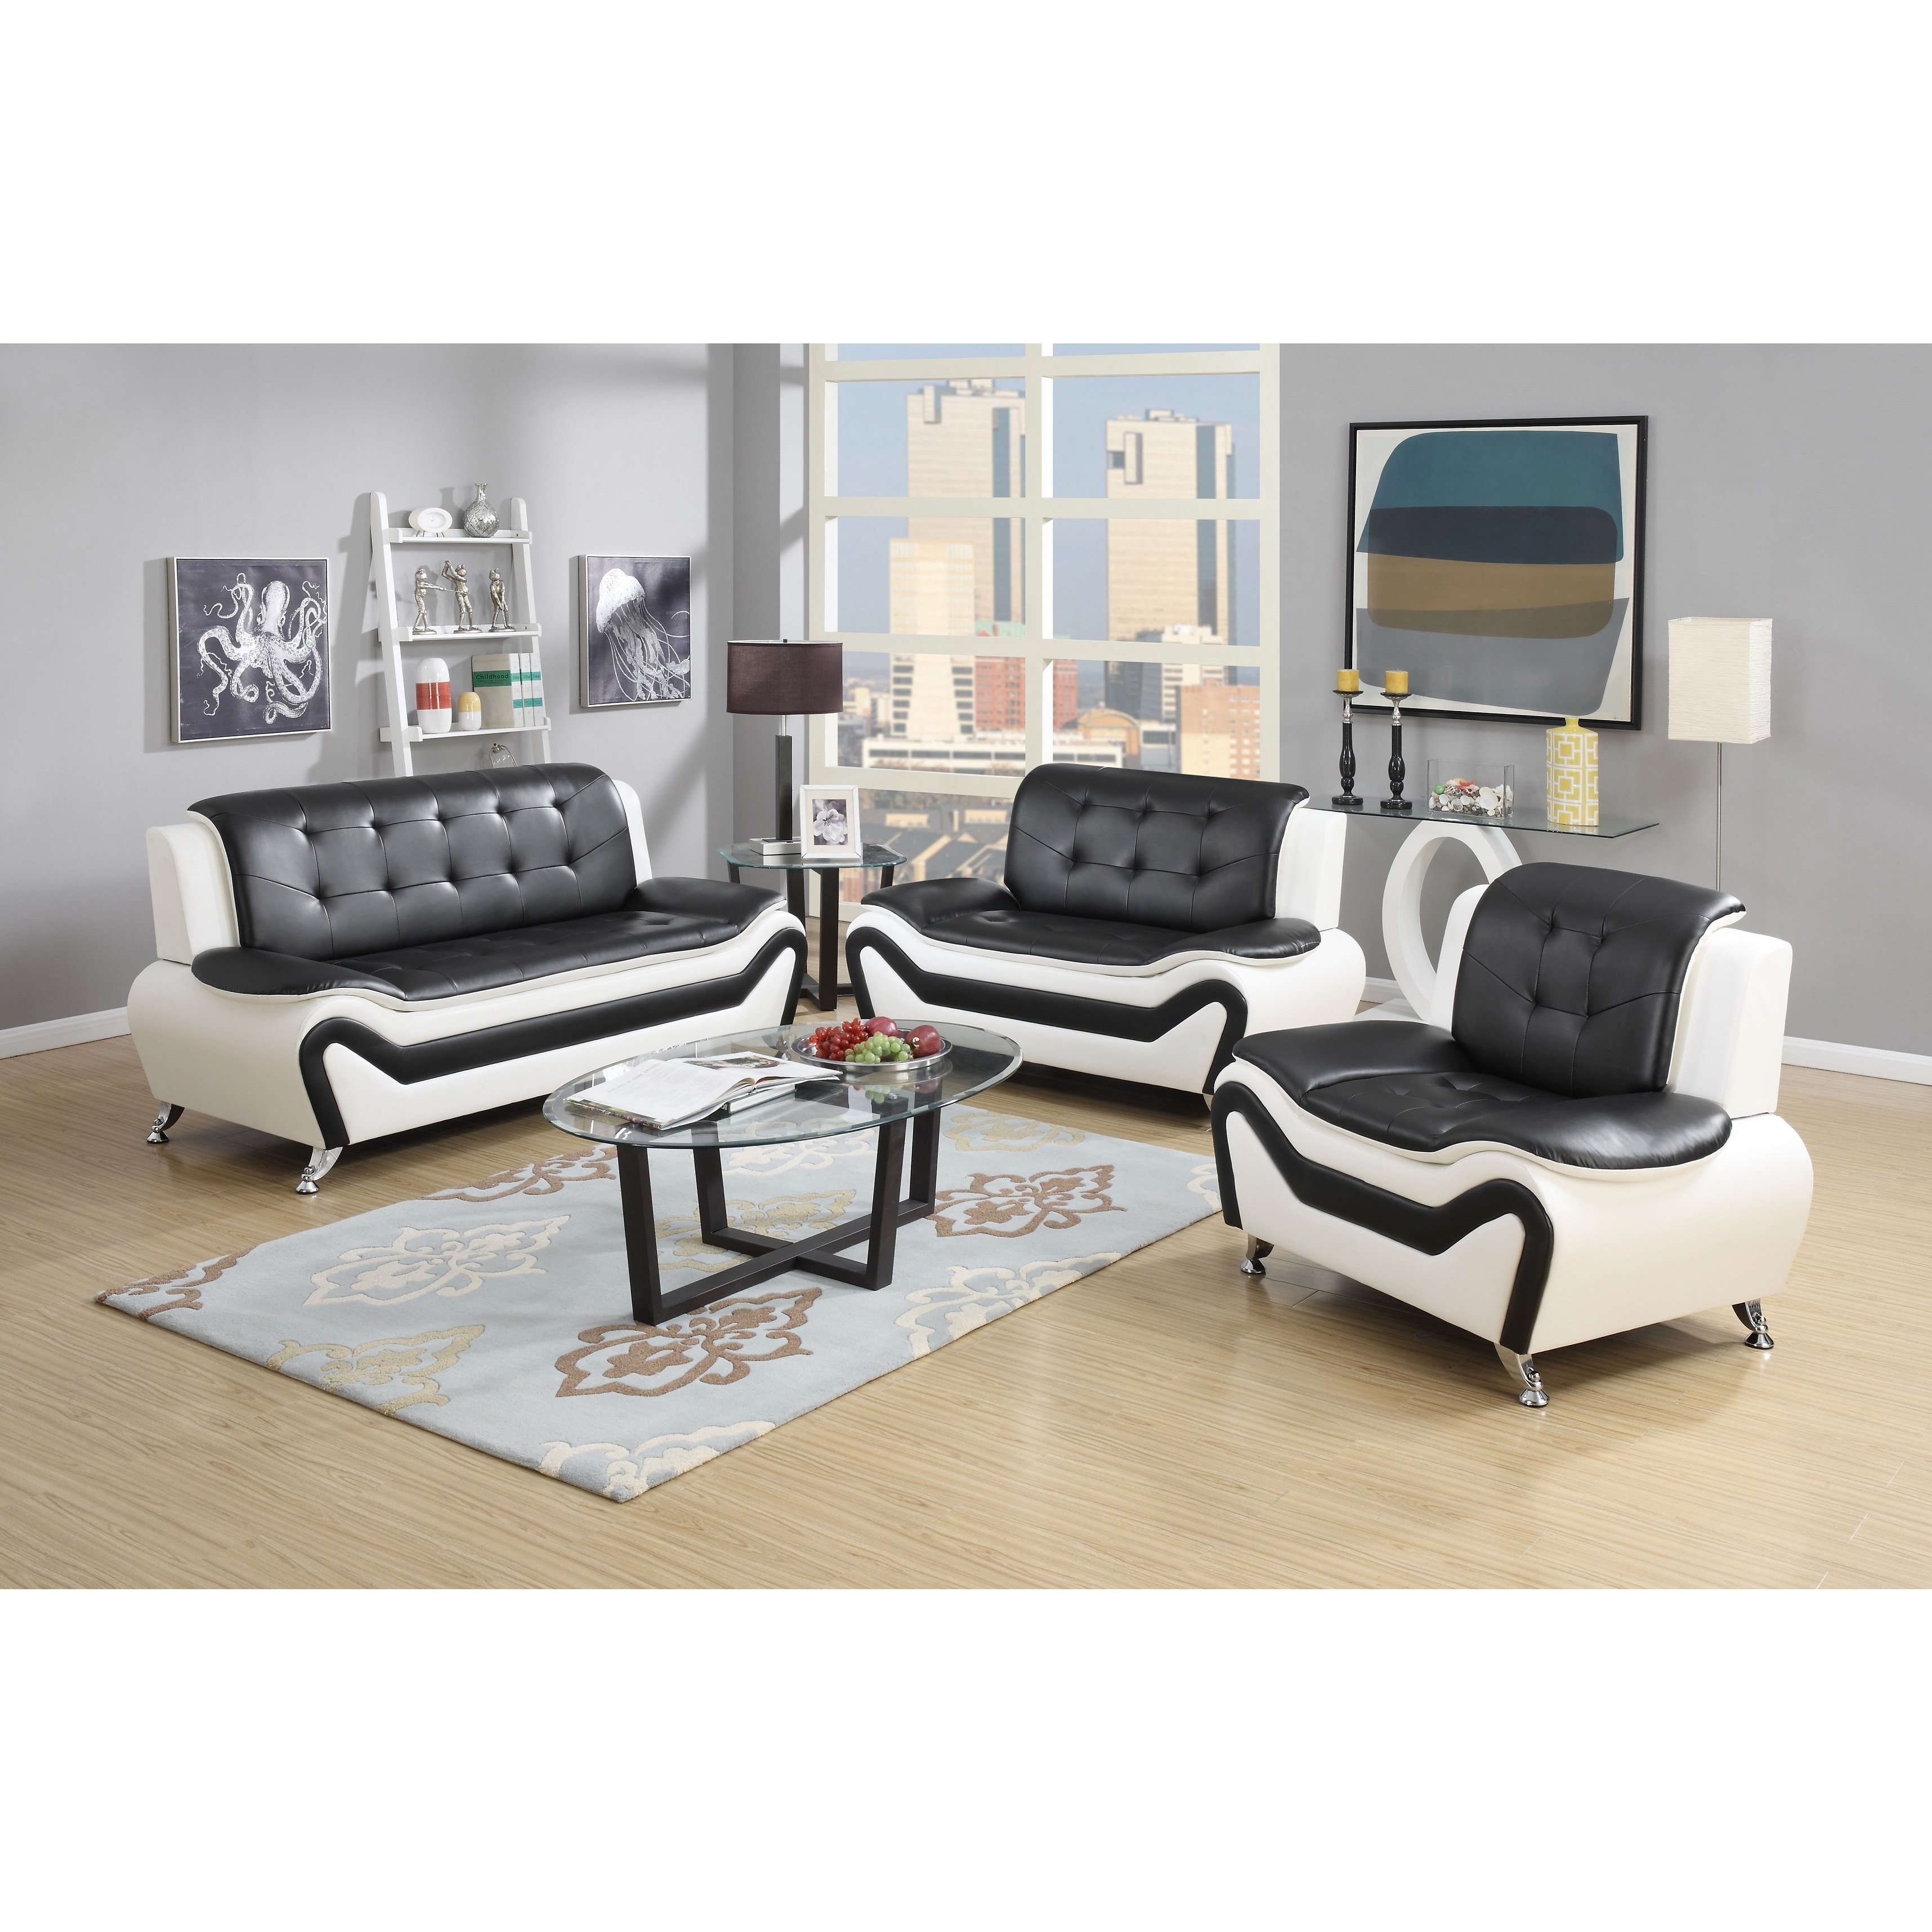 Shop Wanda 3-Piece Modern Bonded Leather Sofa Set - Free Shipping Today -  Overstock - 10736797